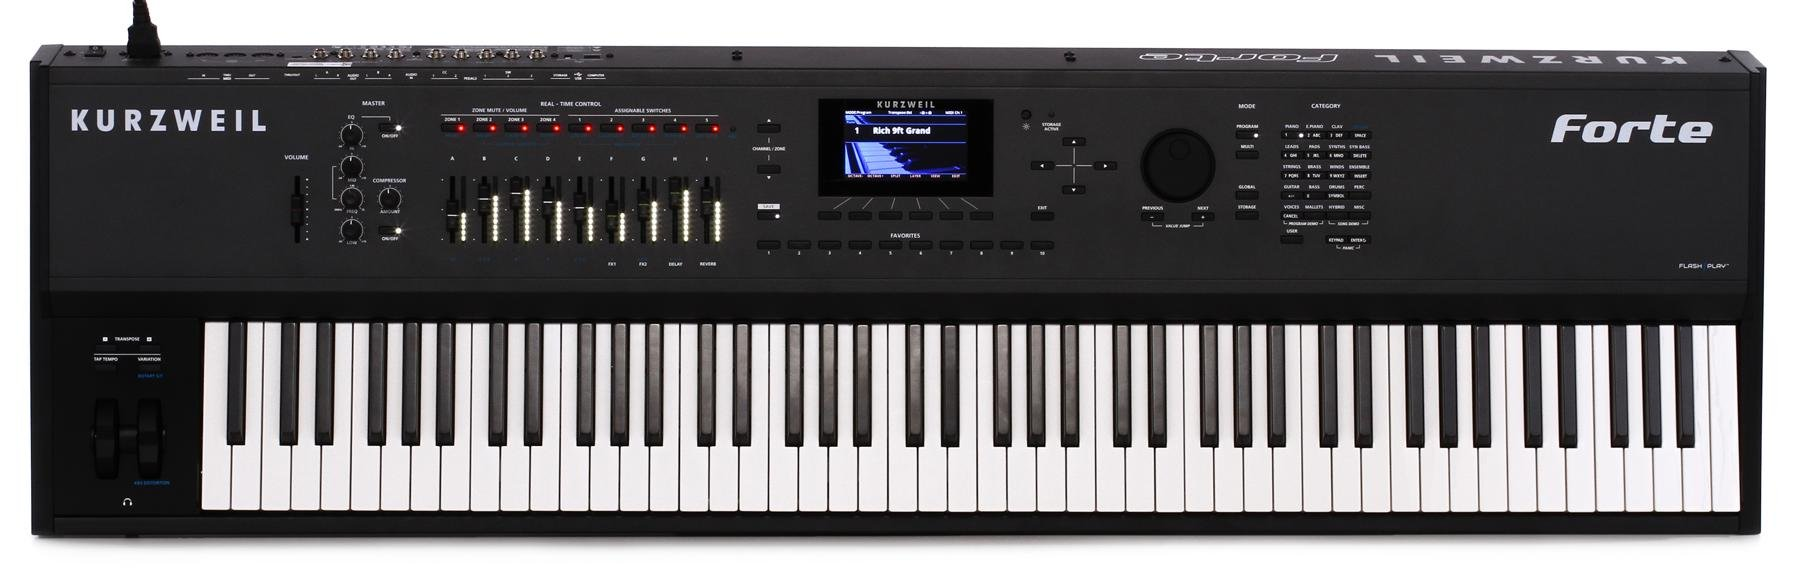 Digital Piano Shootout - with Sound Samples! | Sweetwater